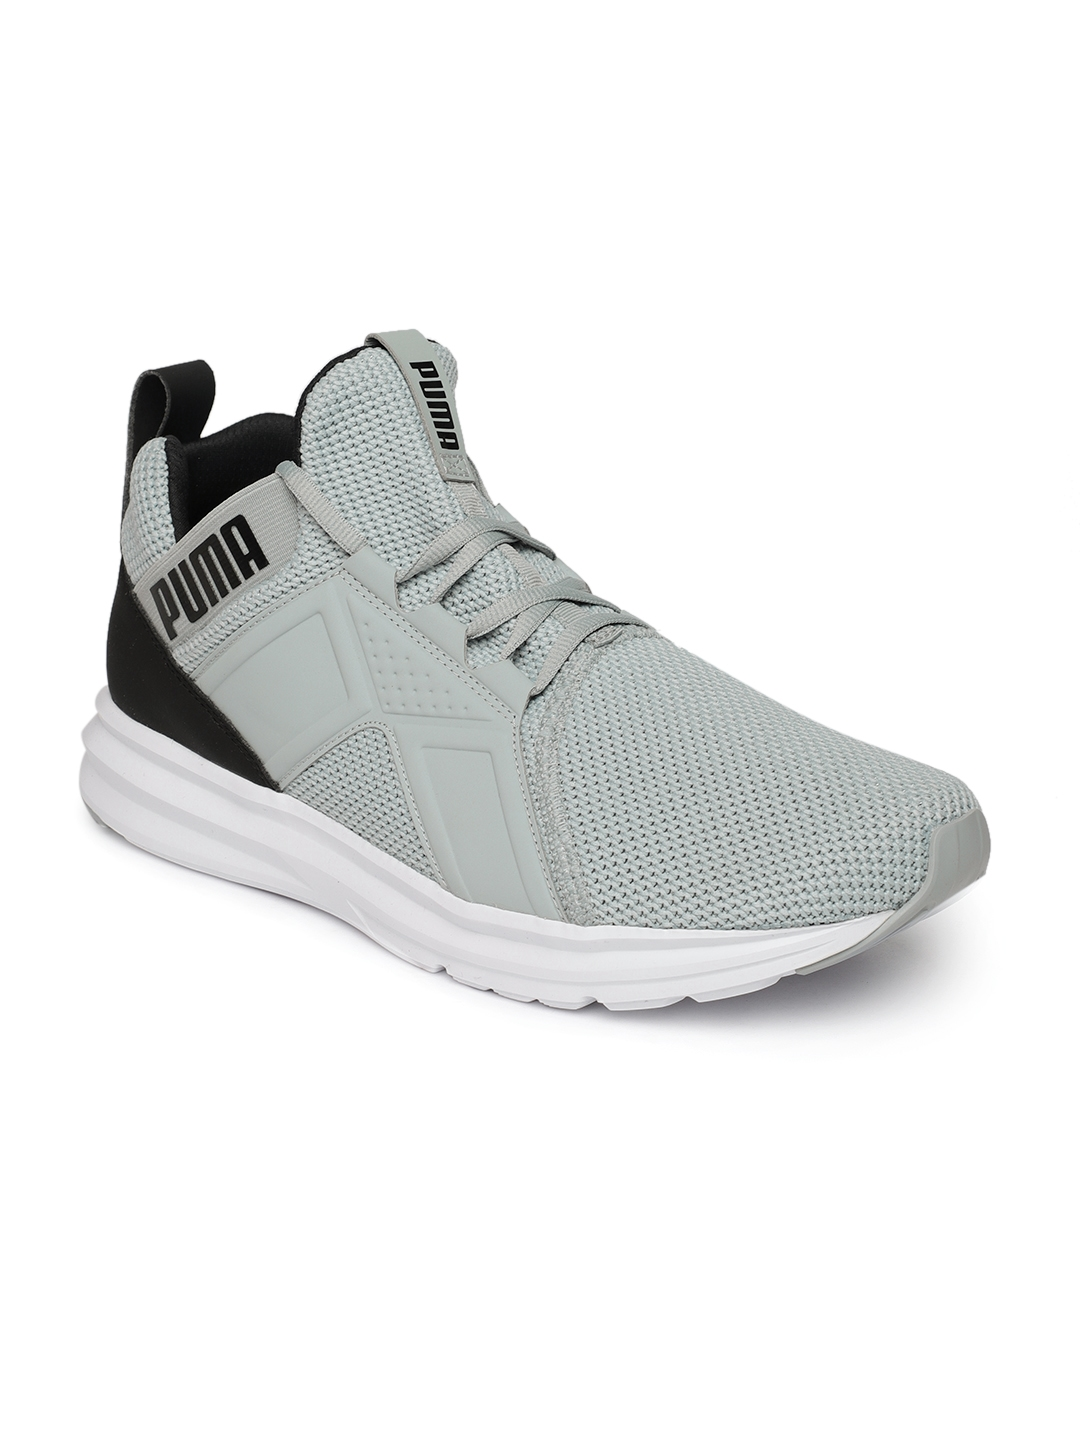 8714a5fcaa1 Buy Puma Men Grey Enzo Weave Running Shoes - Sports Shoes for Men ...